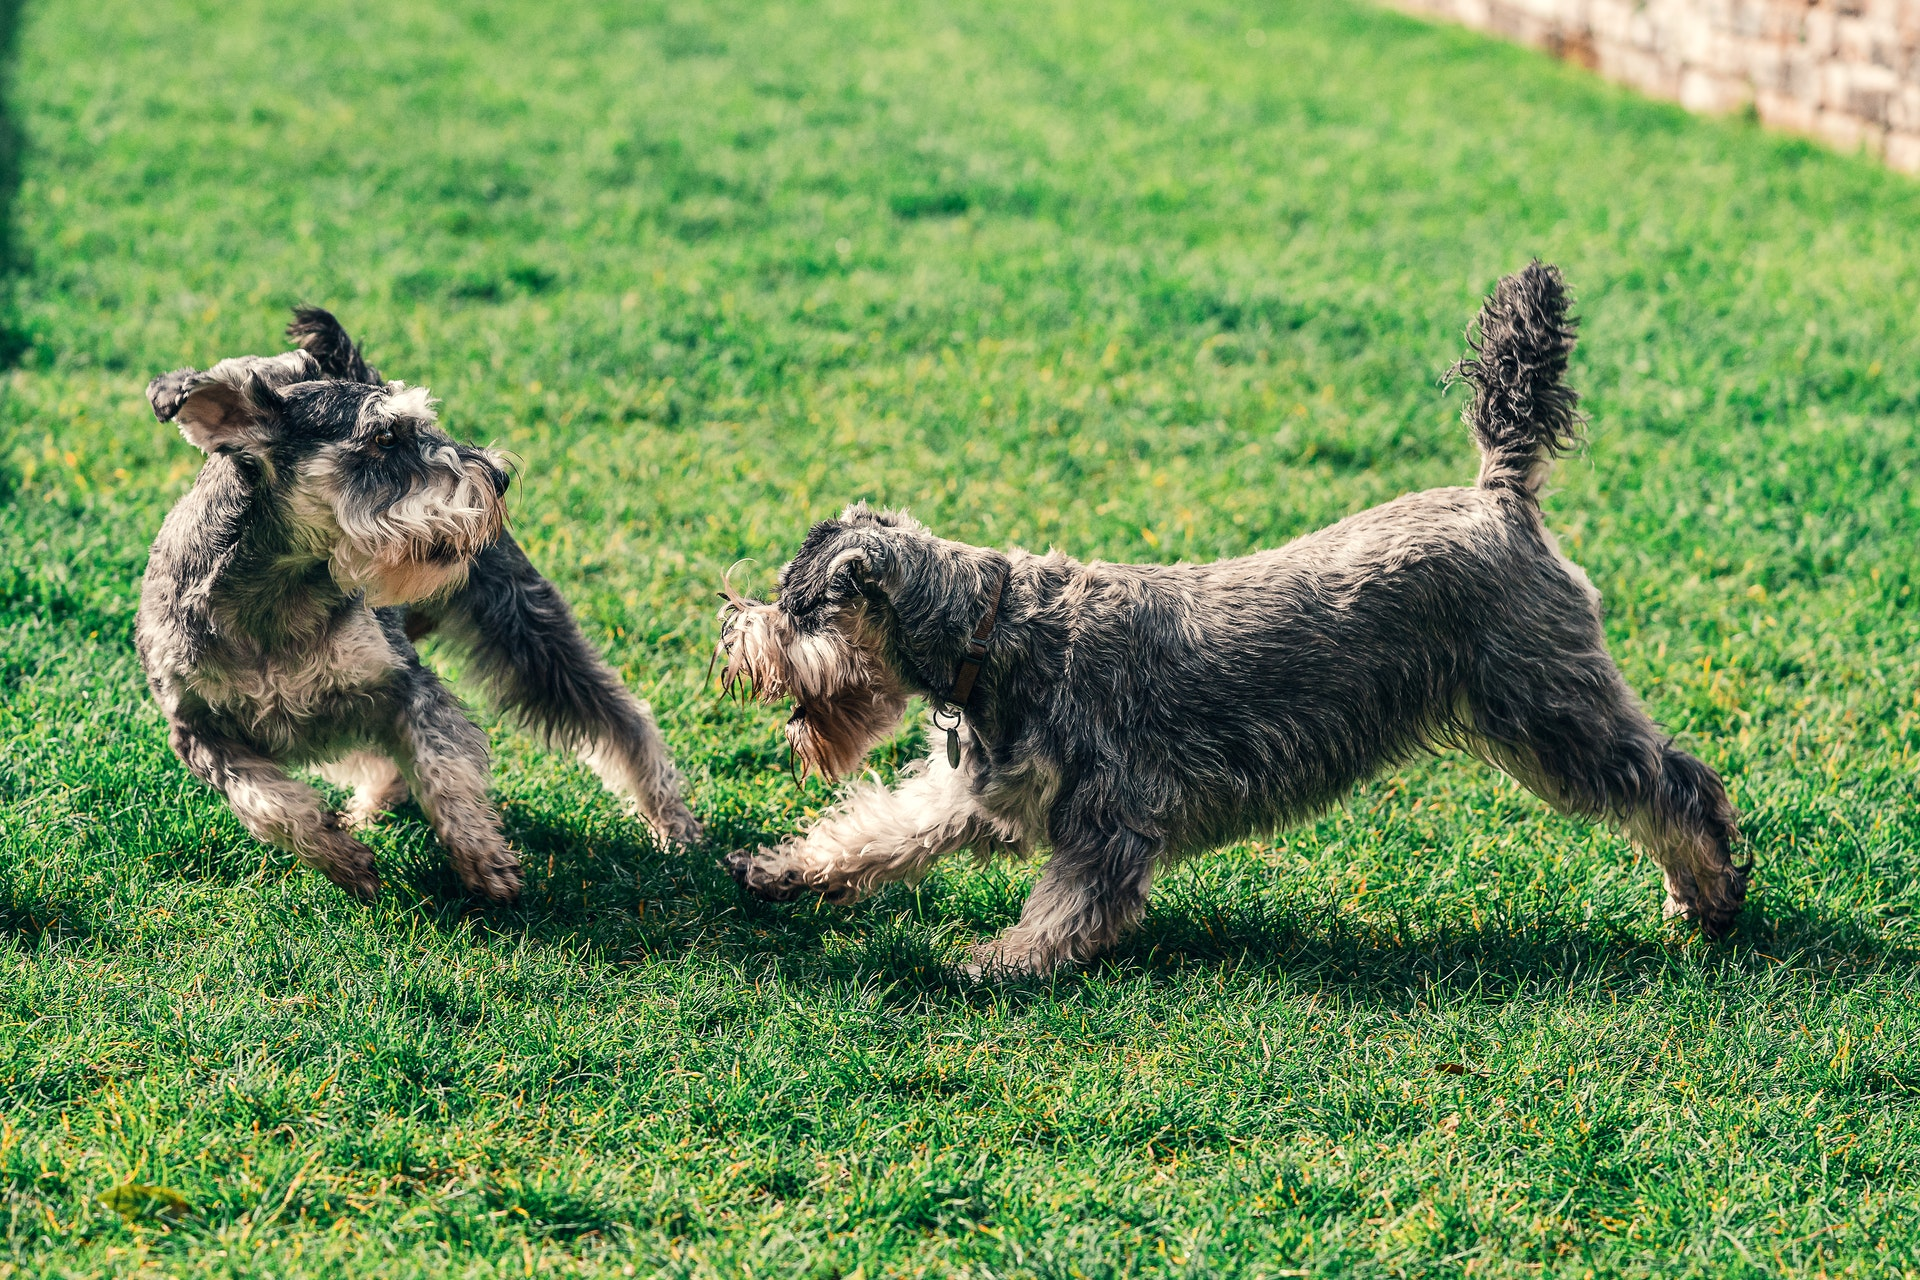 two schnauzers playing on the grass